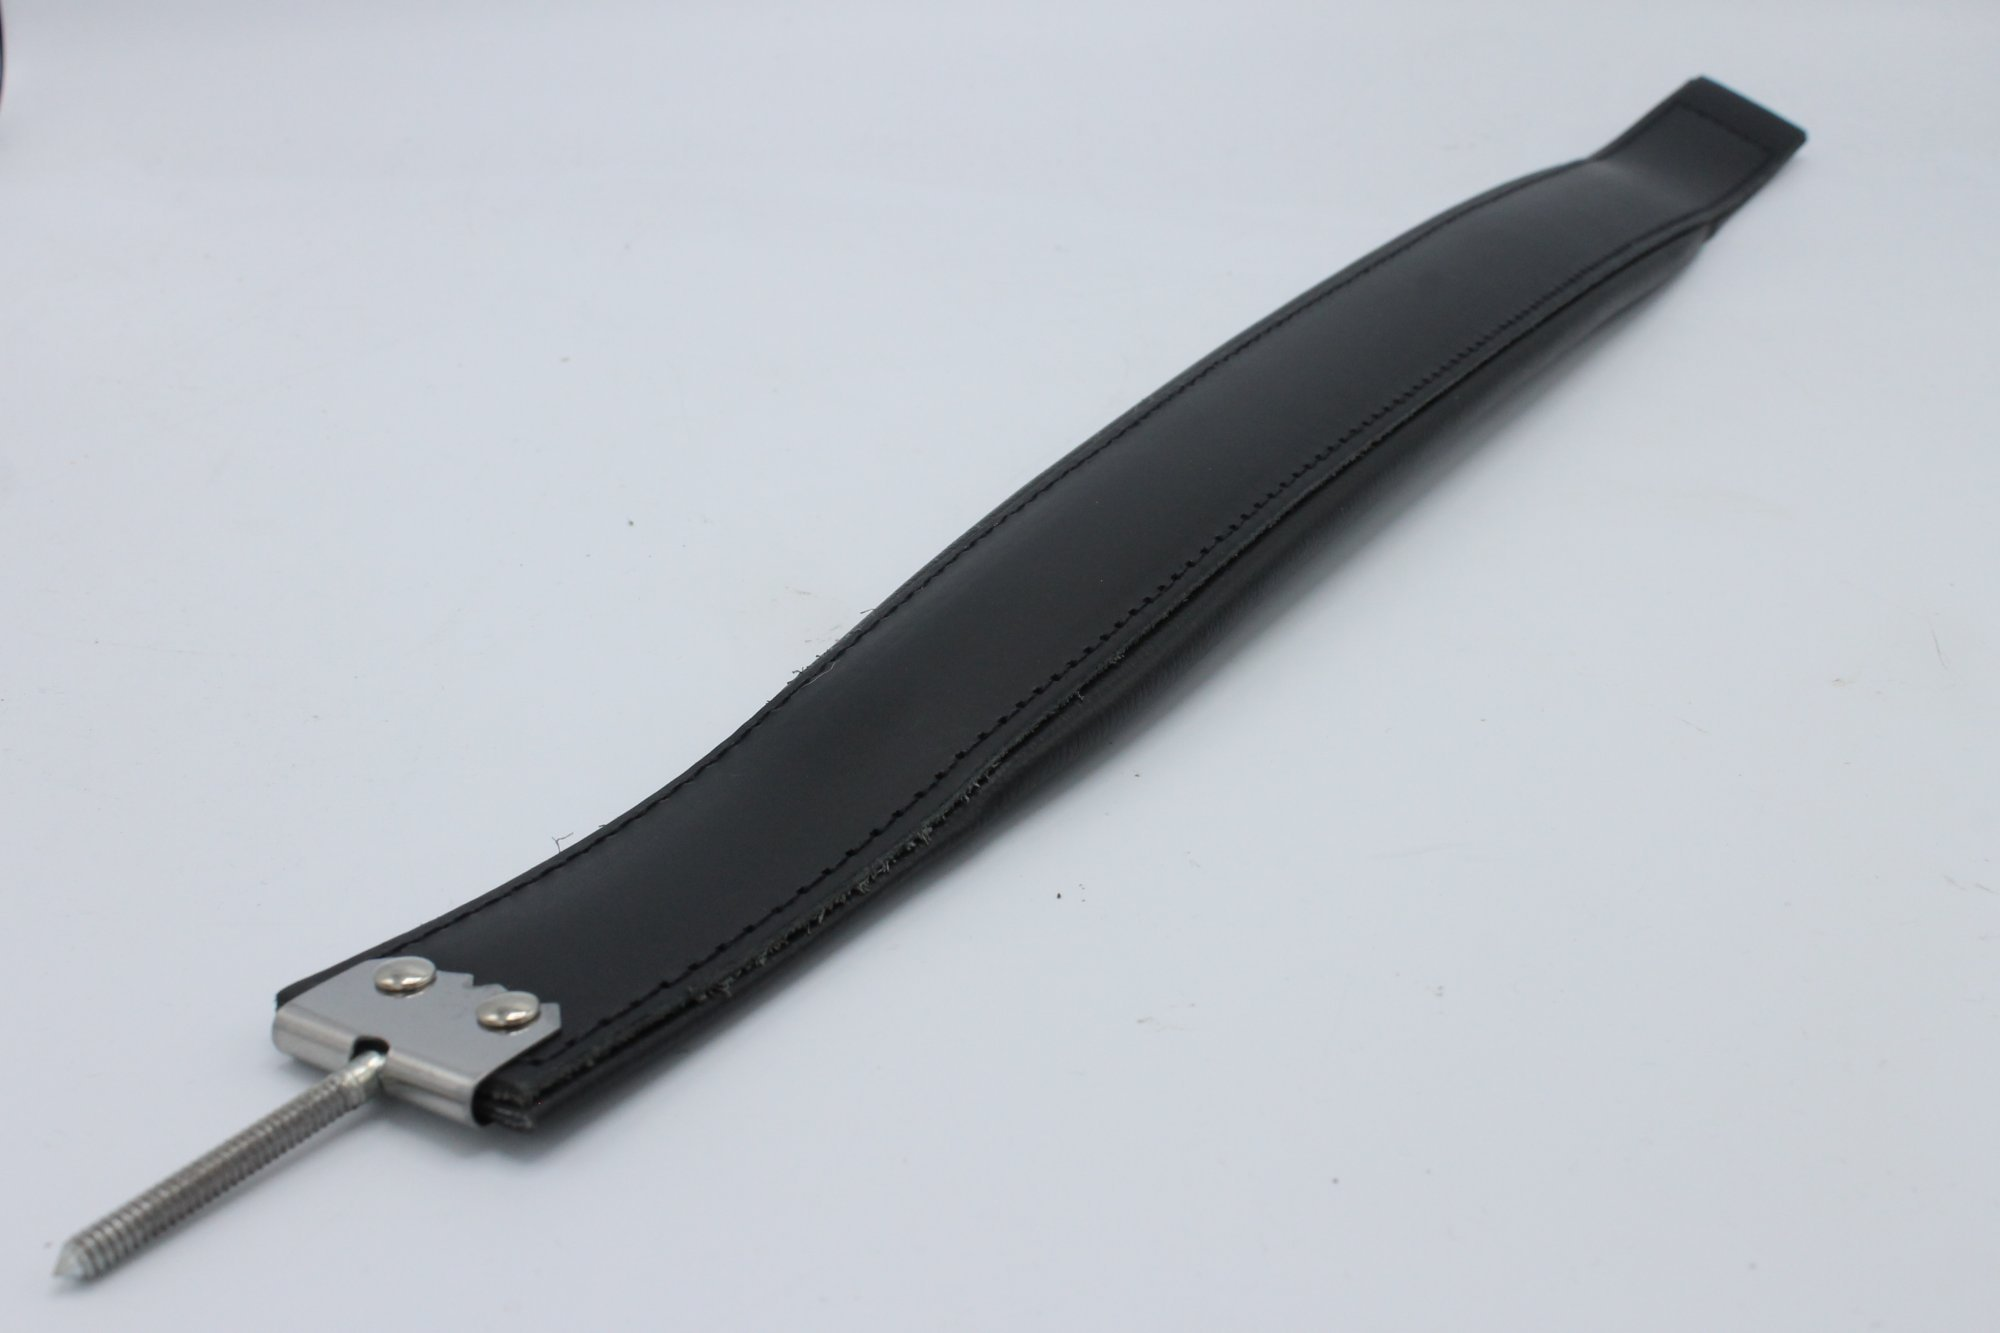 New Black Leather Fuselli Accordion Bass Hand Strap Width (2in/5cm) Length (16.5in/42cm)